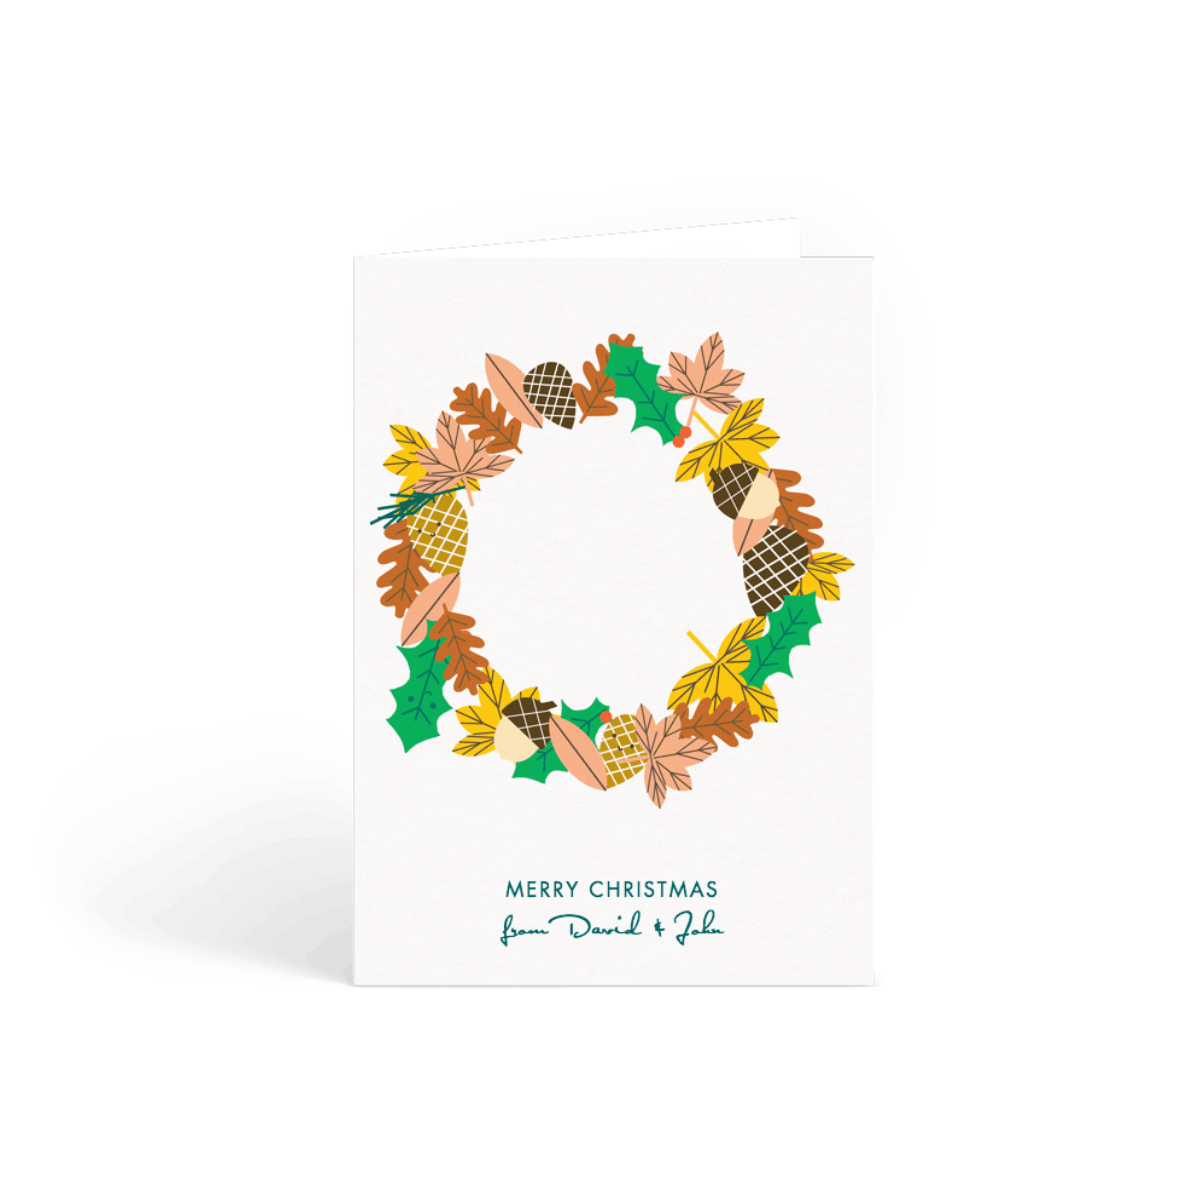 Https%3a%2f%2fwww.papier.com%2fproduct image%2f31239%2f2%2fautumn wreath 7846 front 1510325244.png?ixlib=rb 1.1